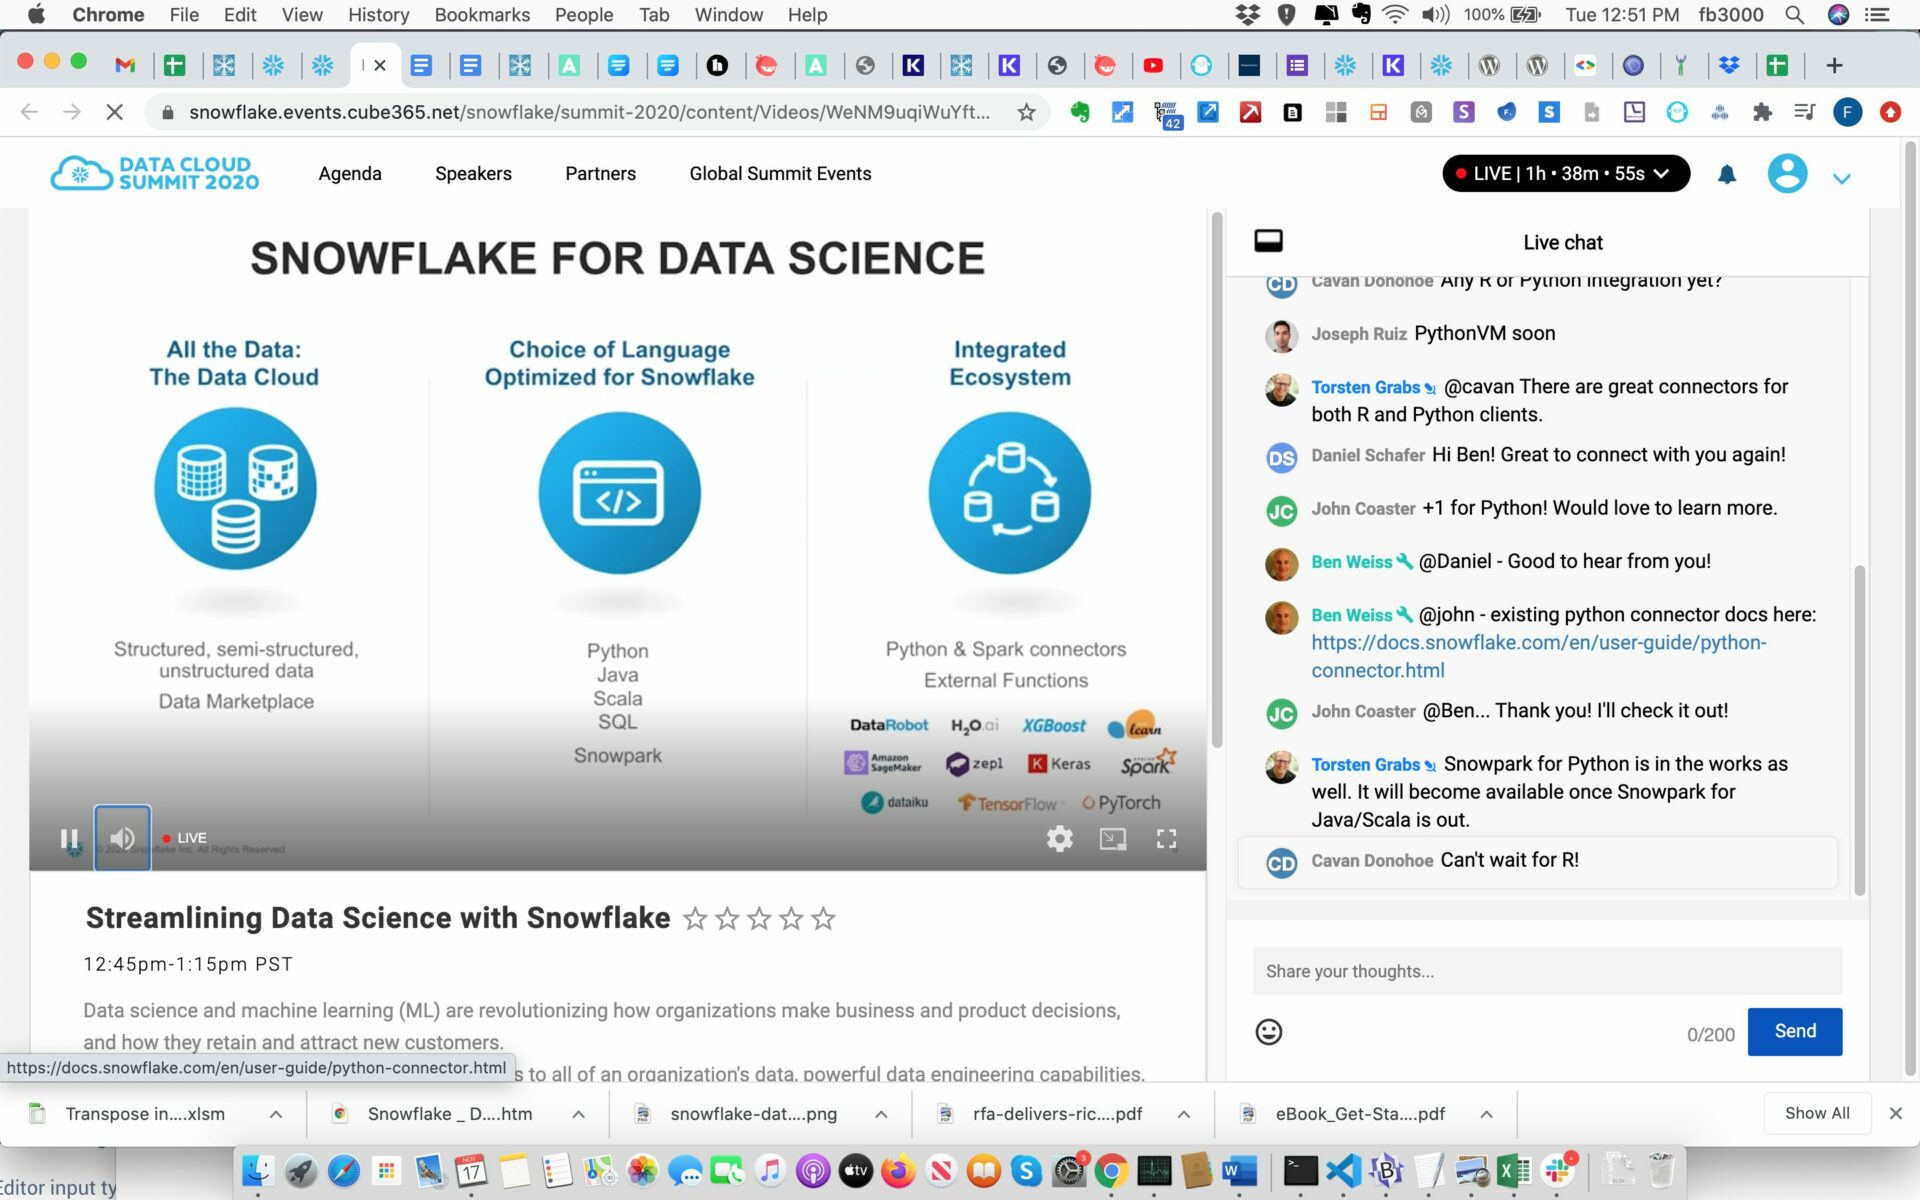 Snowflake For Data Science